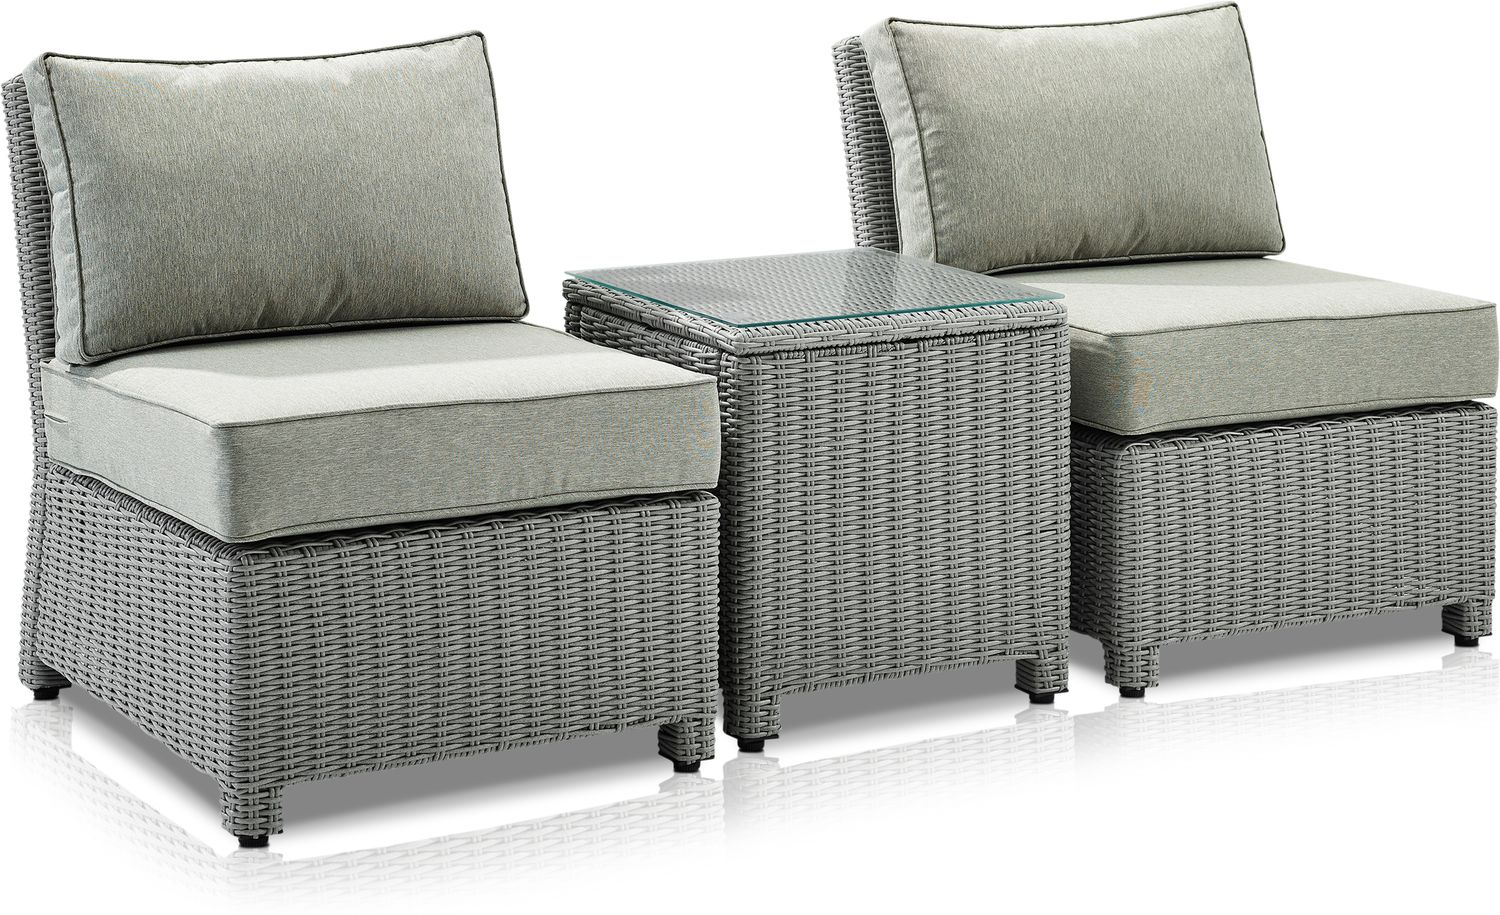 Outdoor Furniture - Destin Set of 2 Outdoor Armless Chairs and End Table